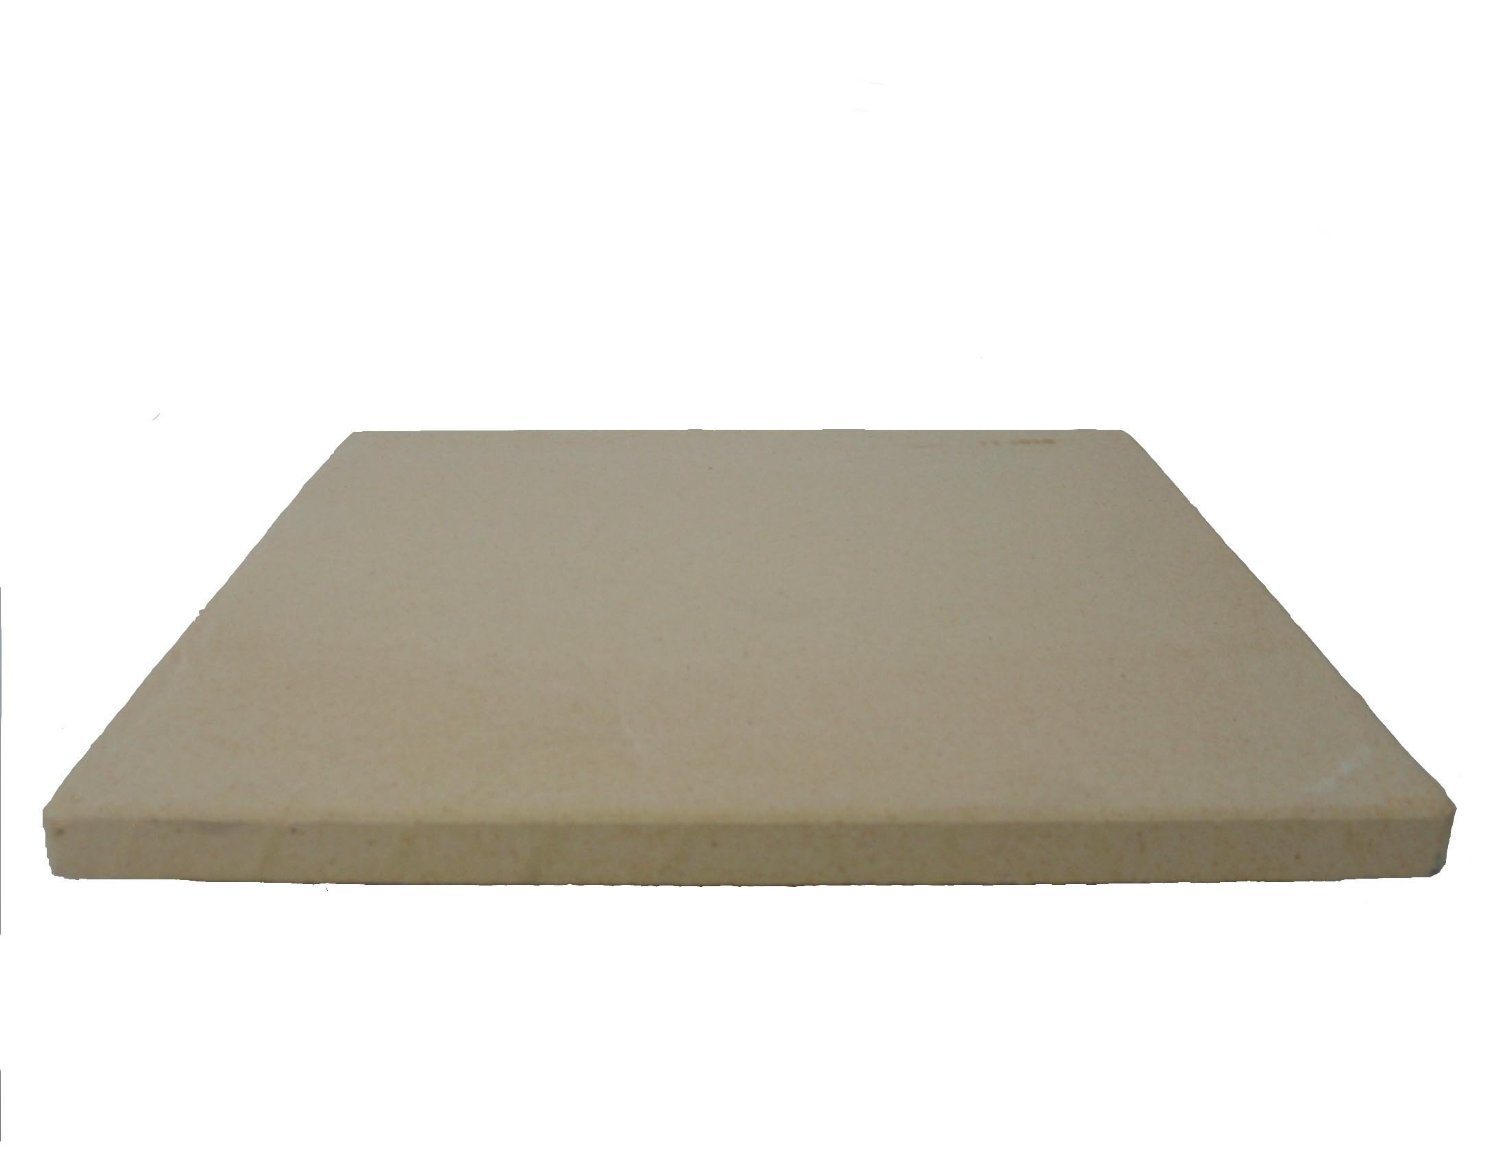 12 X 24 X 1 Rectangle Industrial Pizza Stone by California Pizza Stones (Image #1)